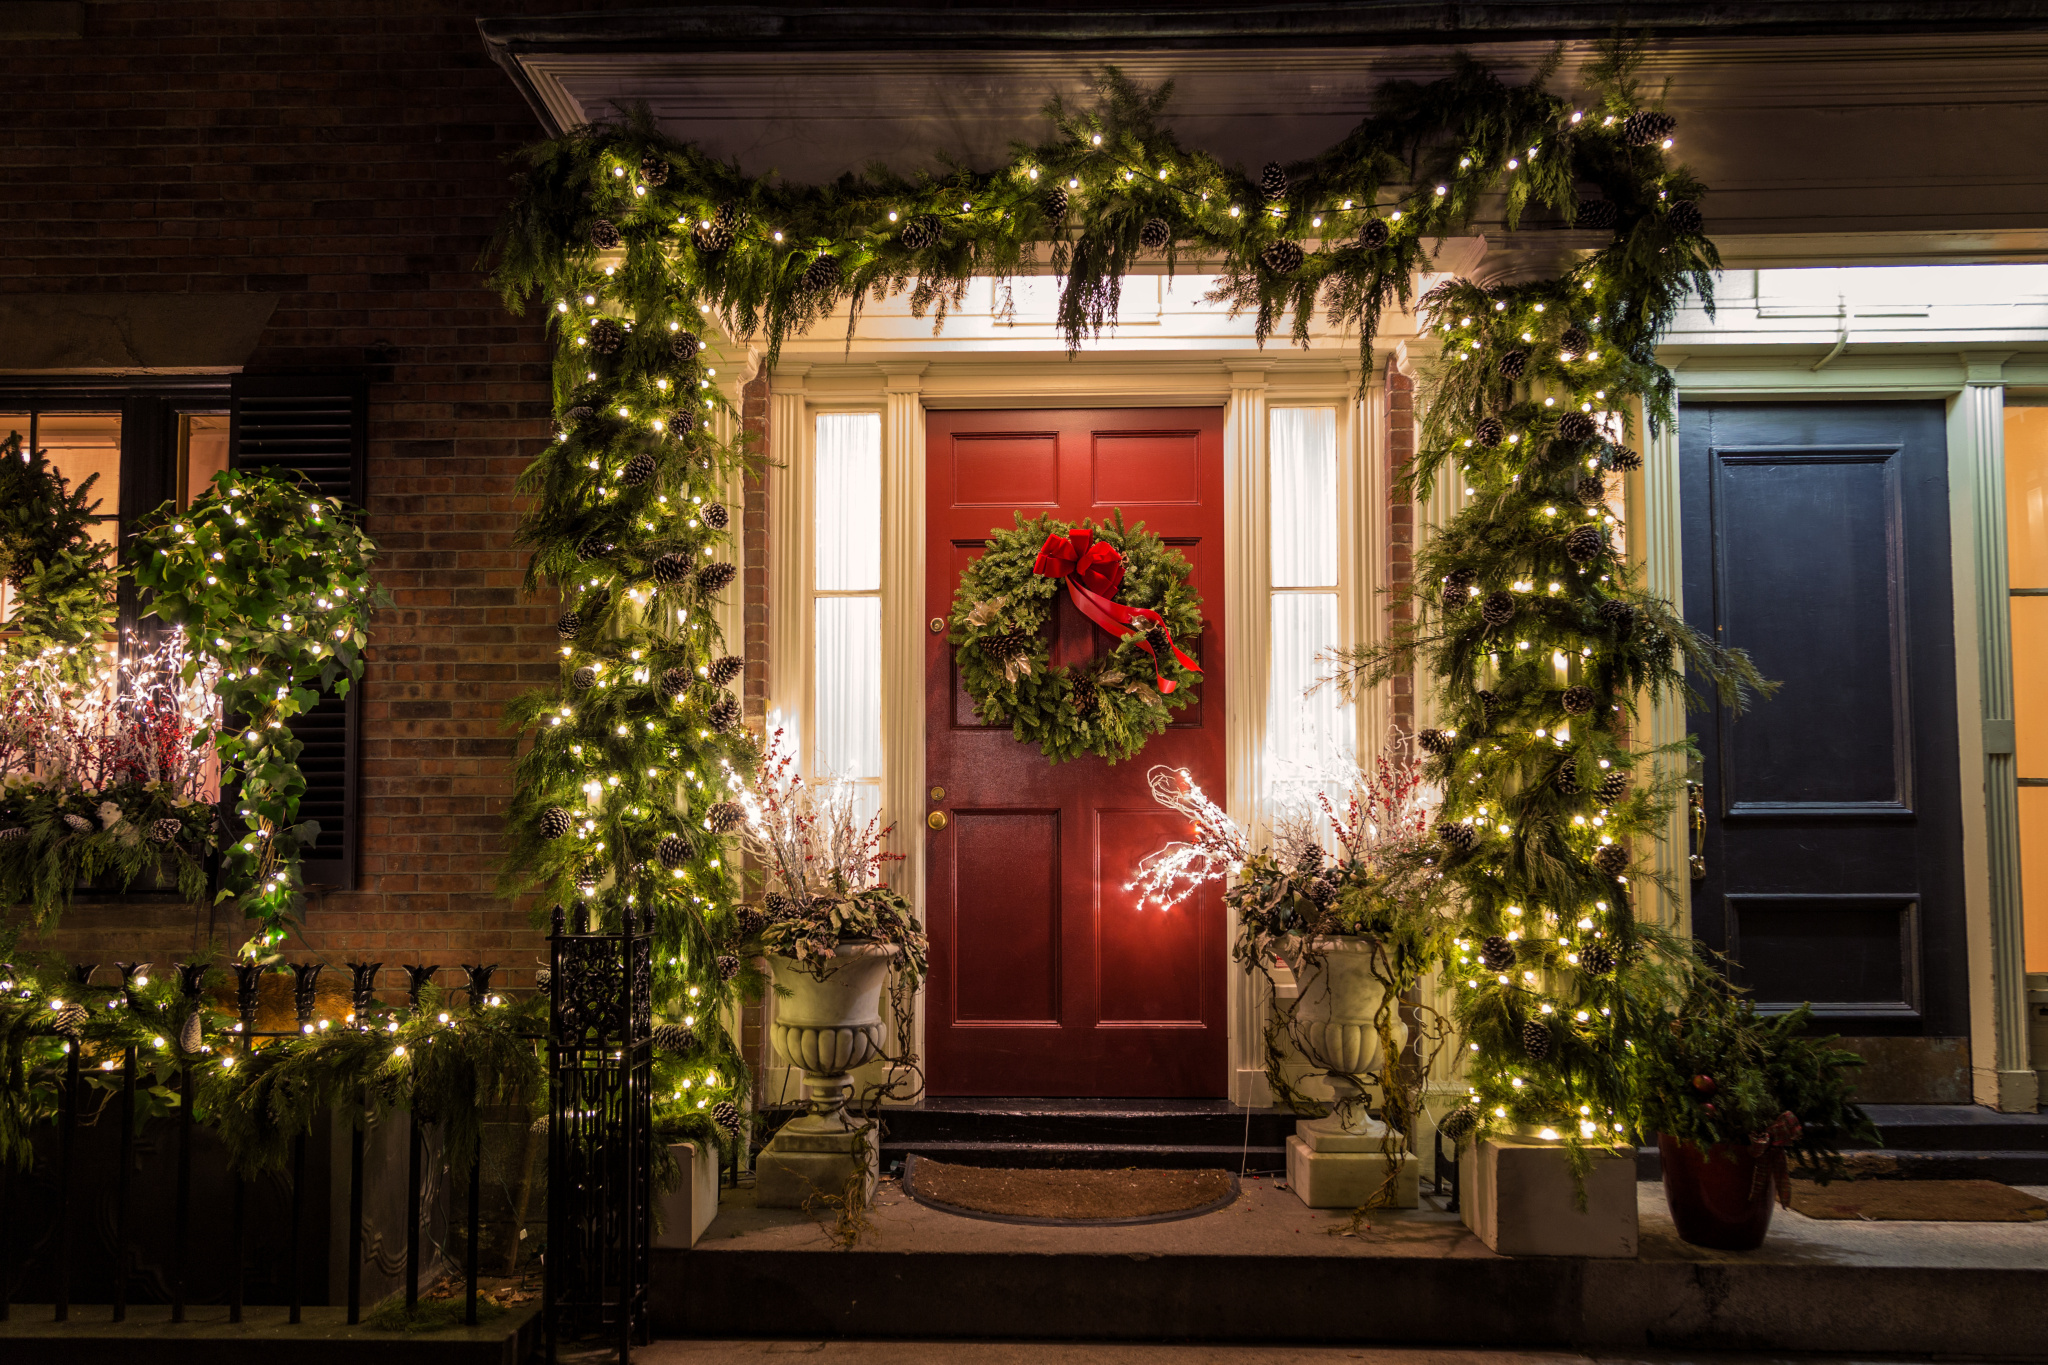 Manasquan Holiday House Tour 2019